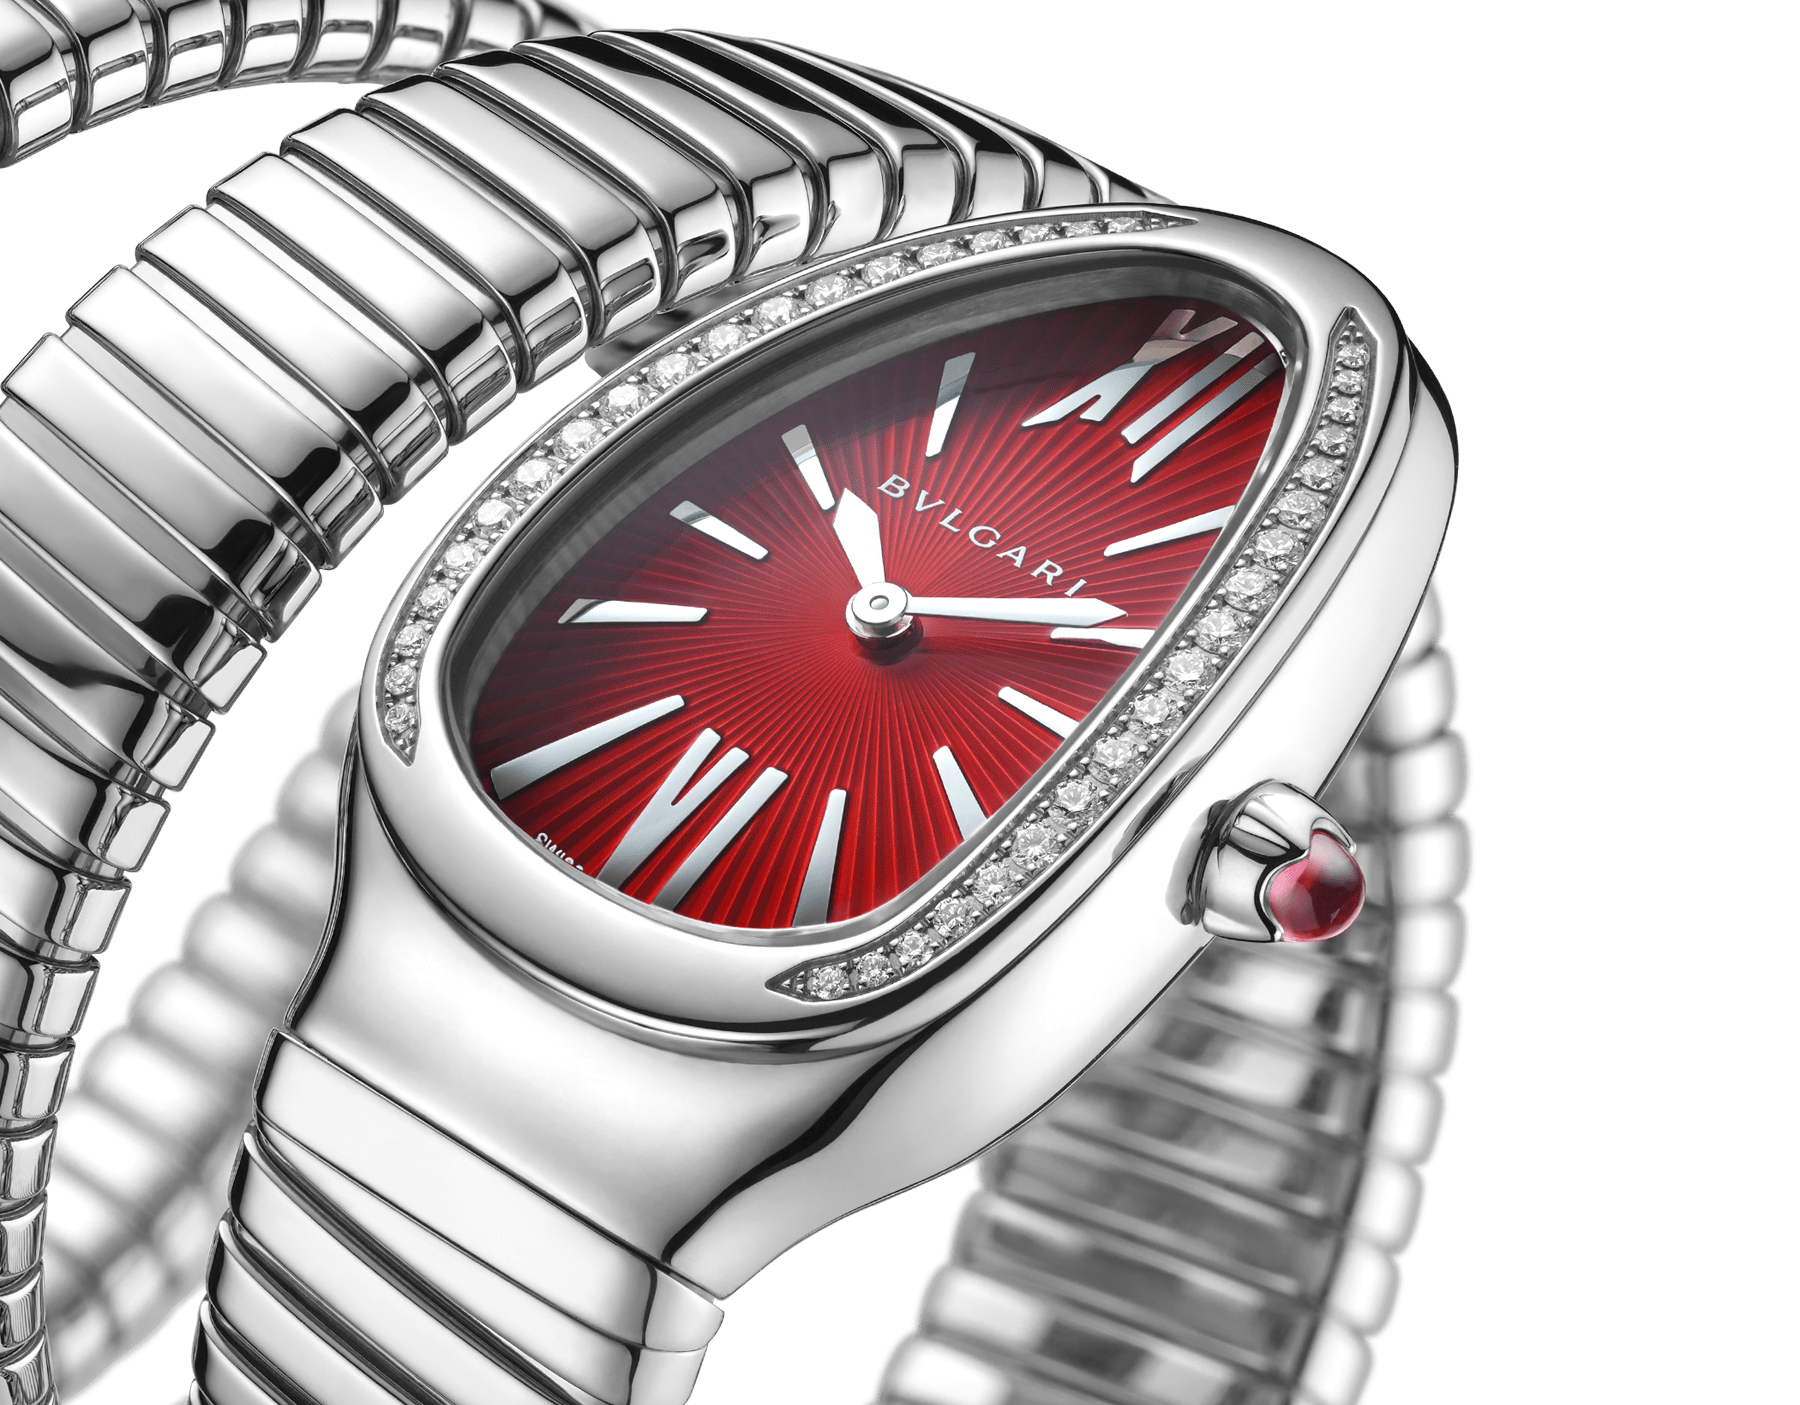 Serpenti Tubogas double spiral watch with stainless steel case set with brilliant cut diamonds, red lacquered dial and stainless steel bracelet. 102682 image 3